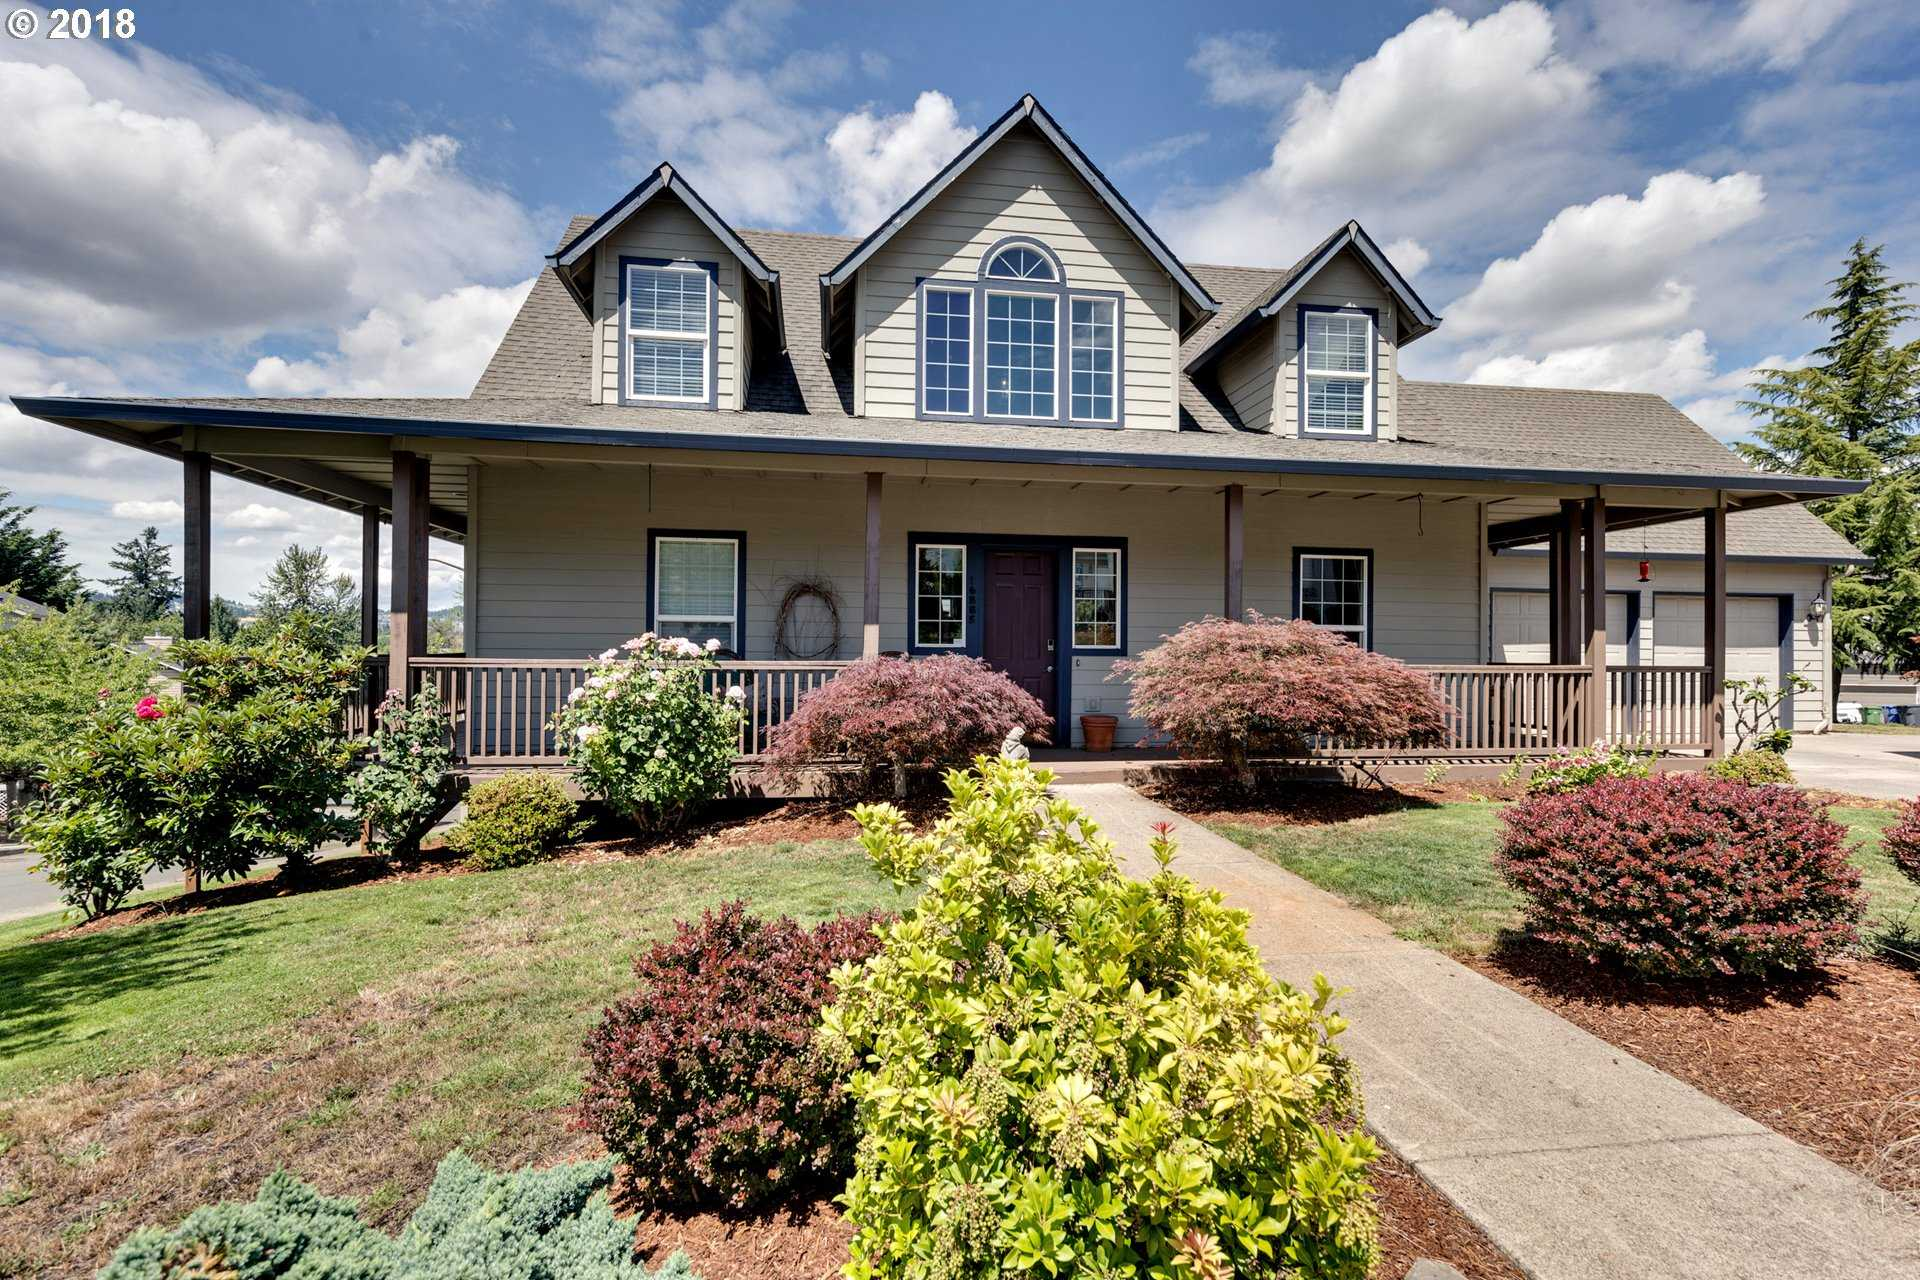 $498,890 - 4Br/3Ba -  for Sale in Damascus